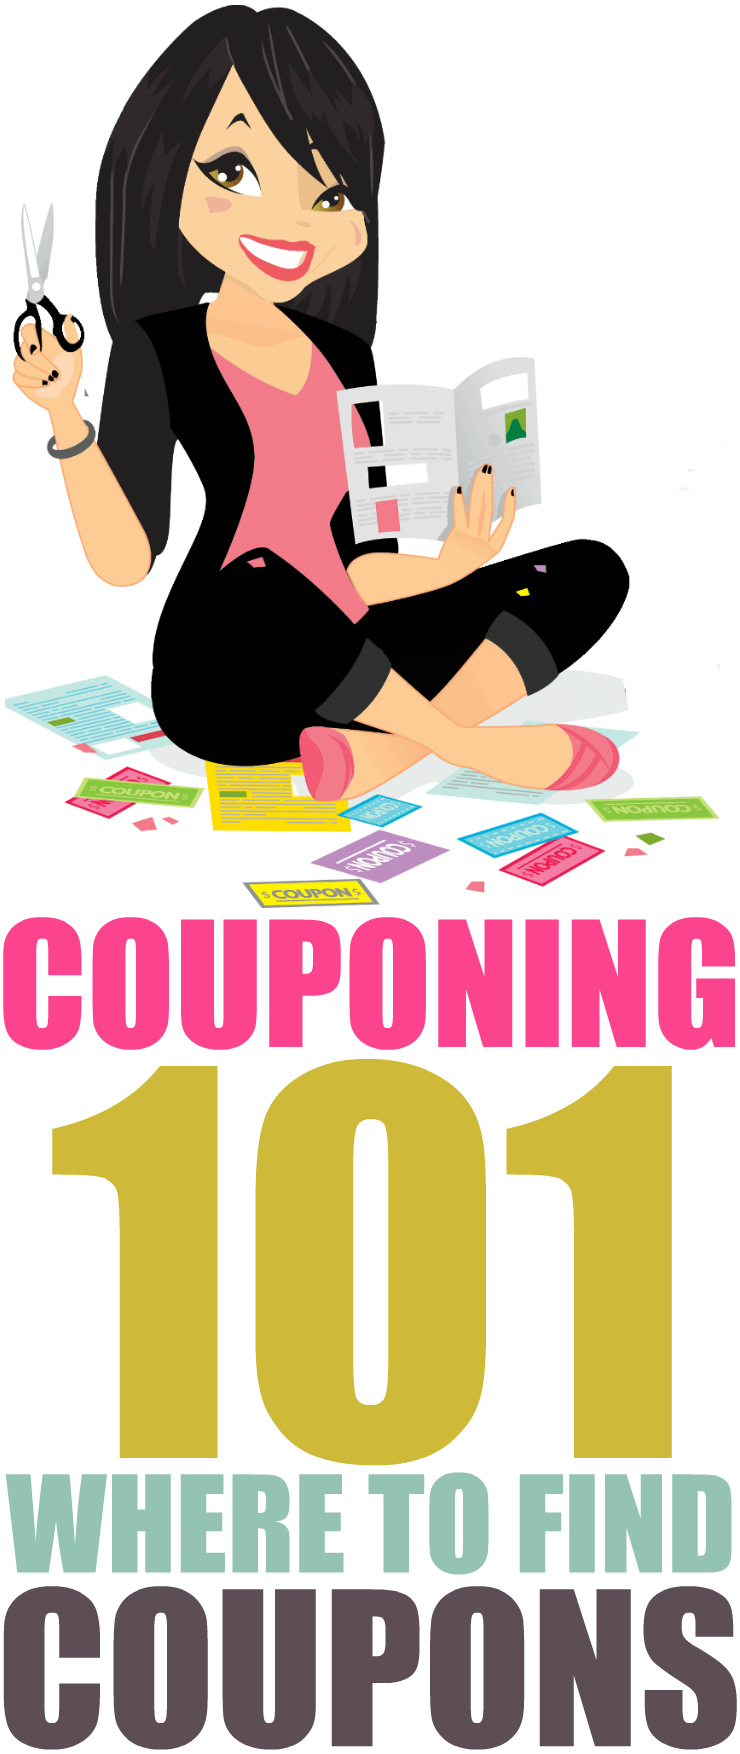 Couponing 101 Where To Find Coupons